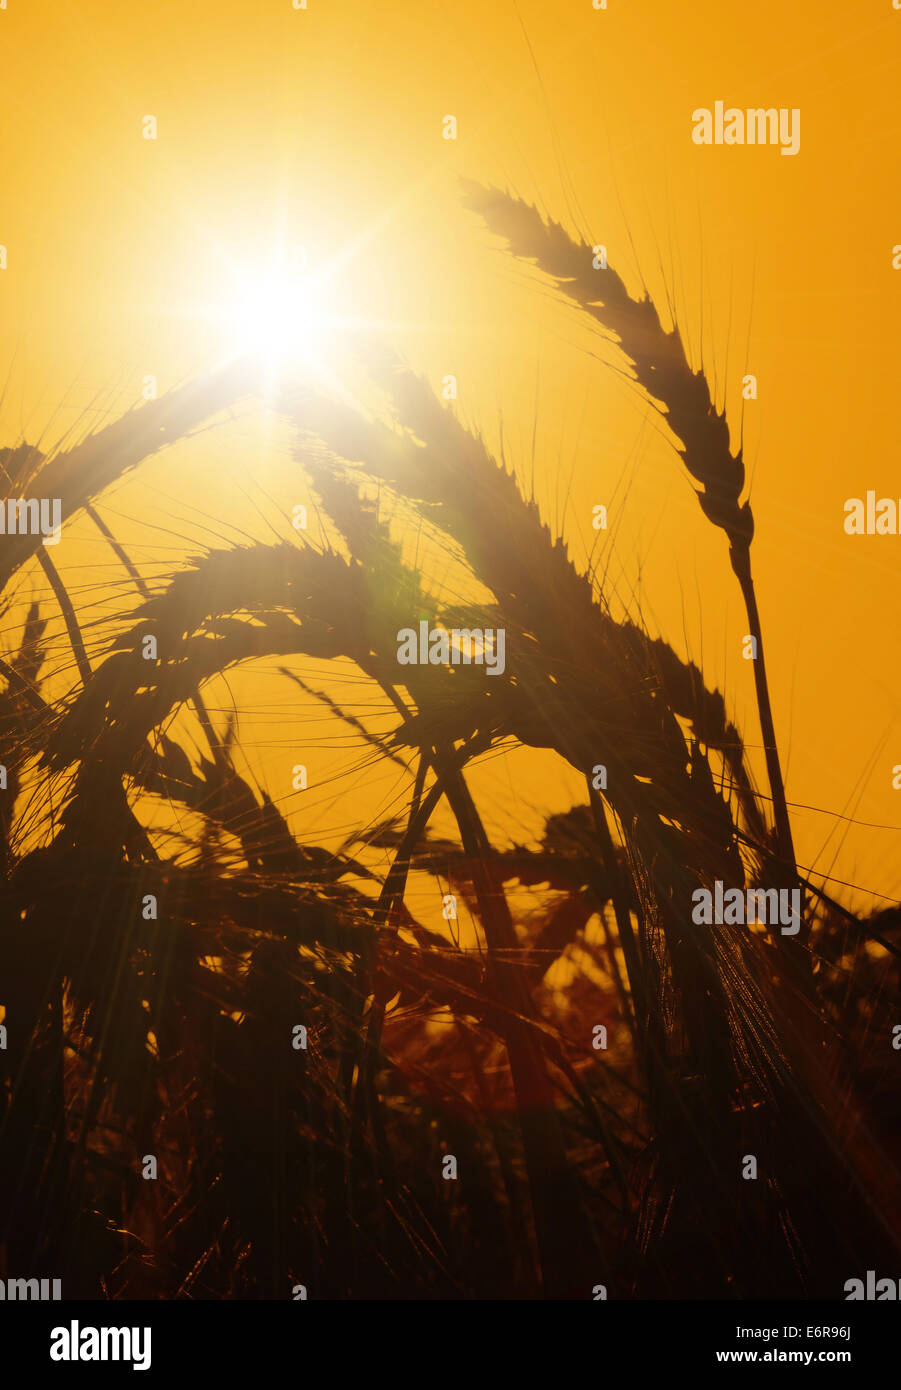 The sun rises over a wheat field. - Stock Image